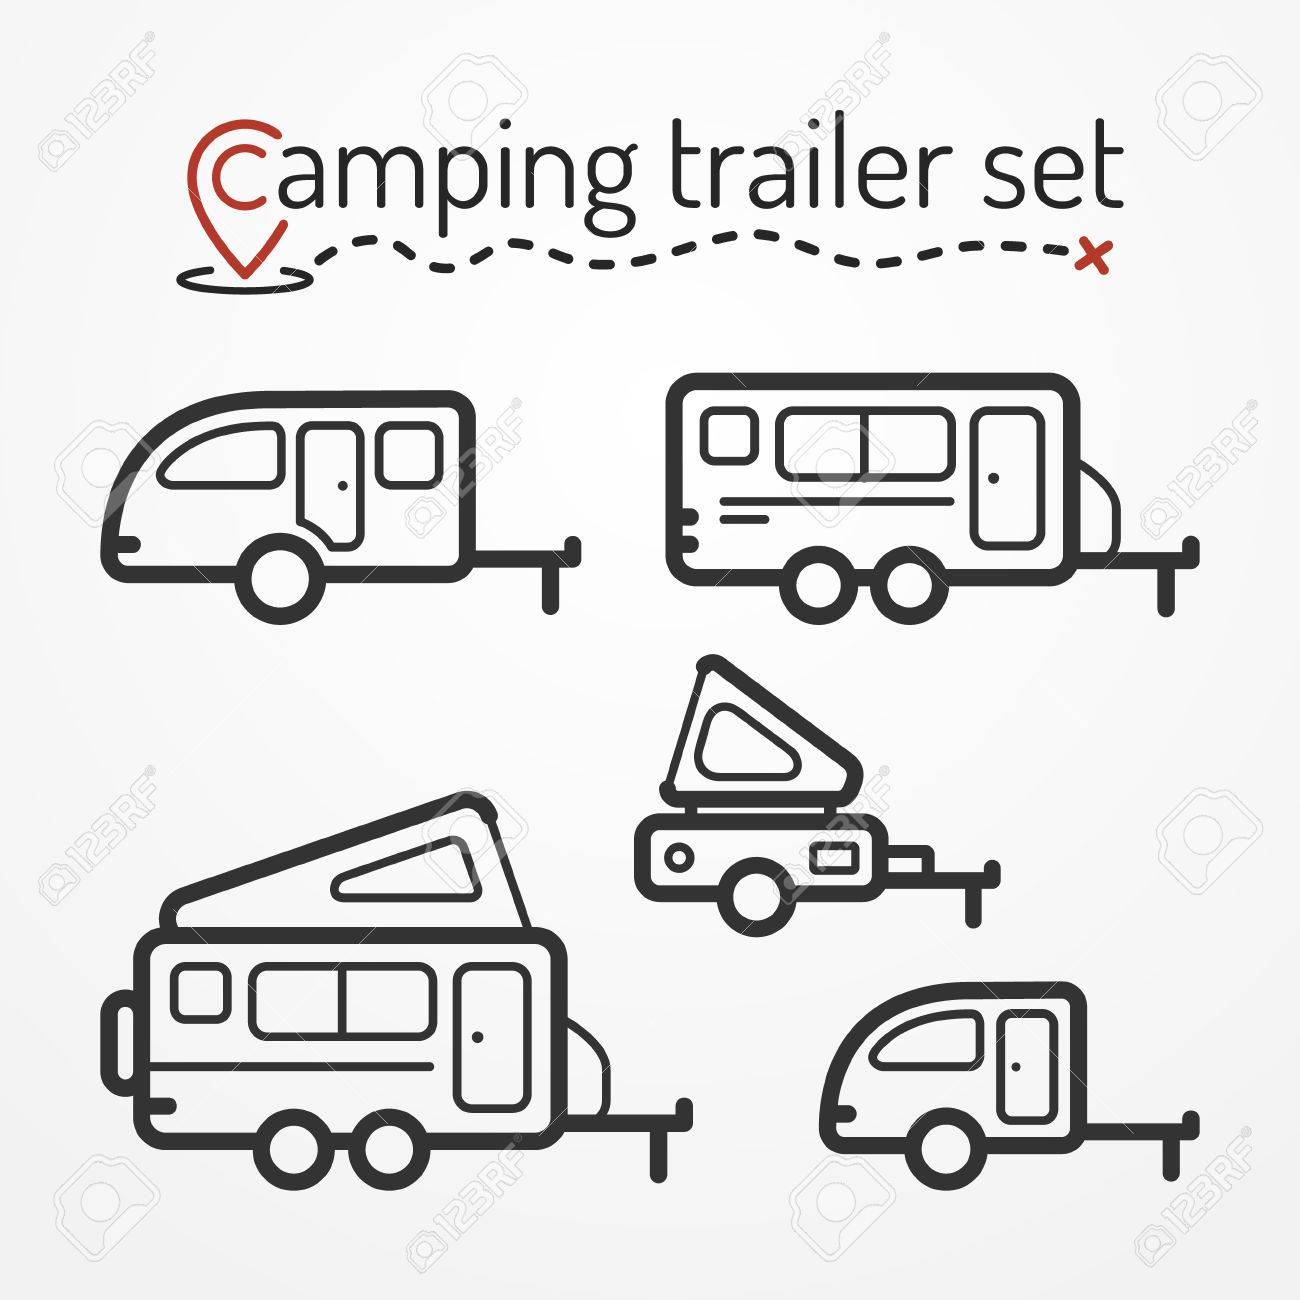 Set Of Camping Trailer Icons Travel Trailer Symbols In Silhouette